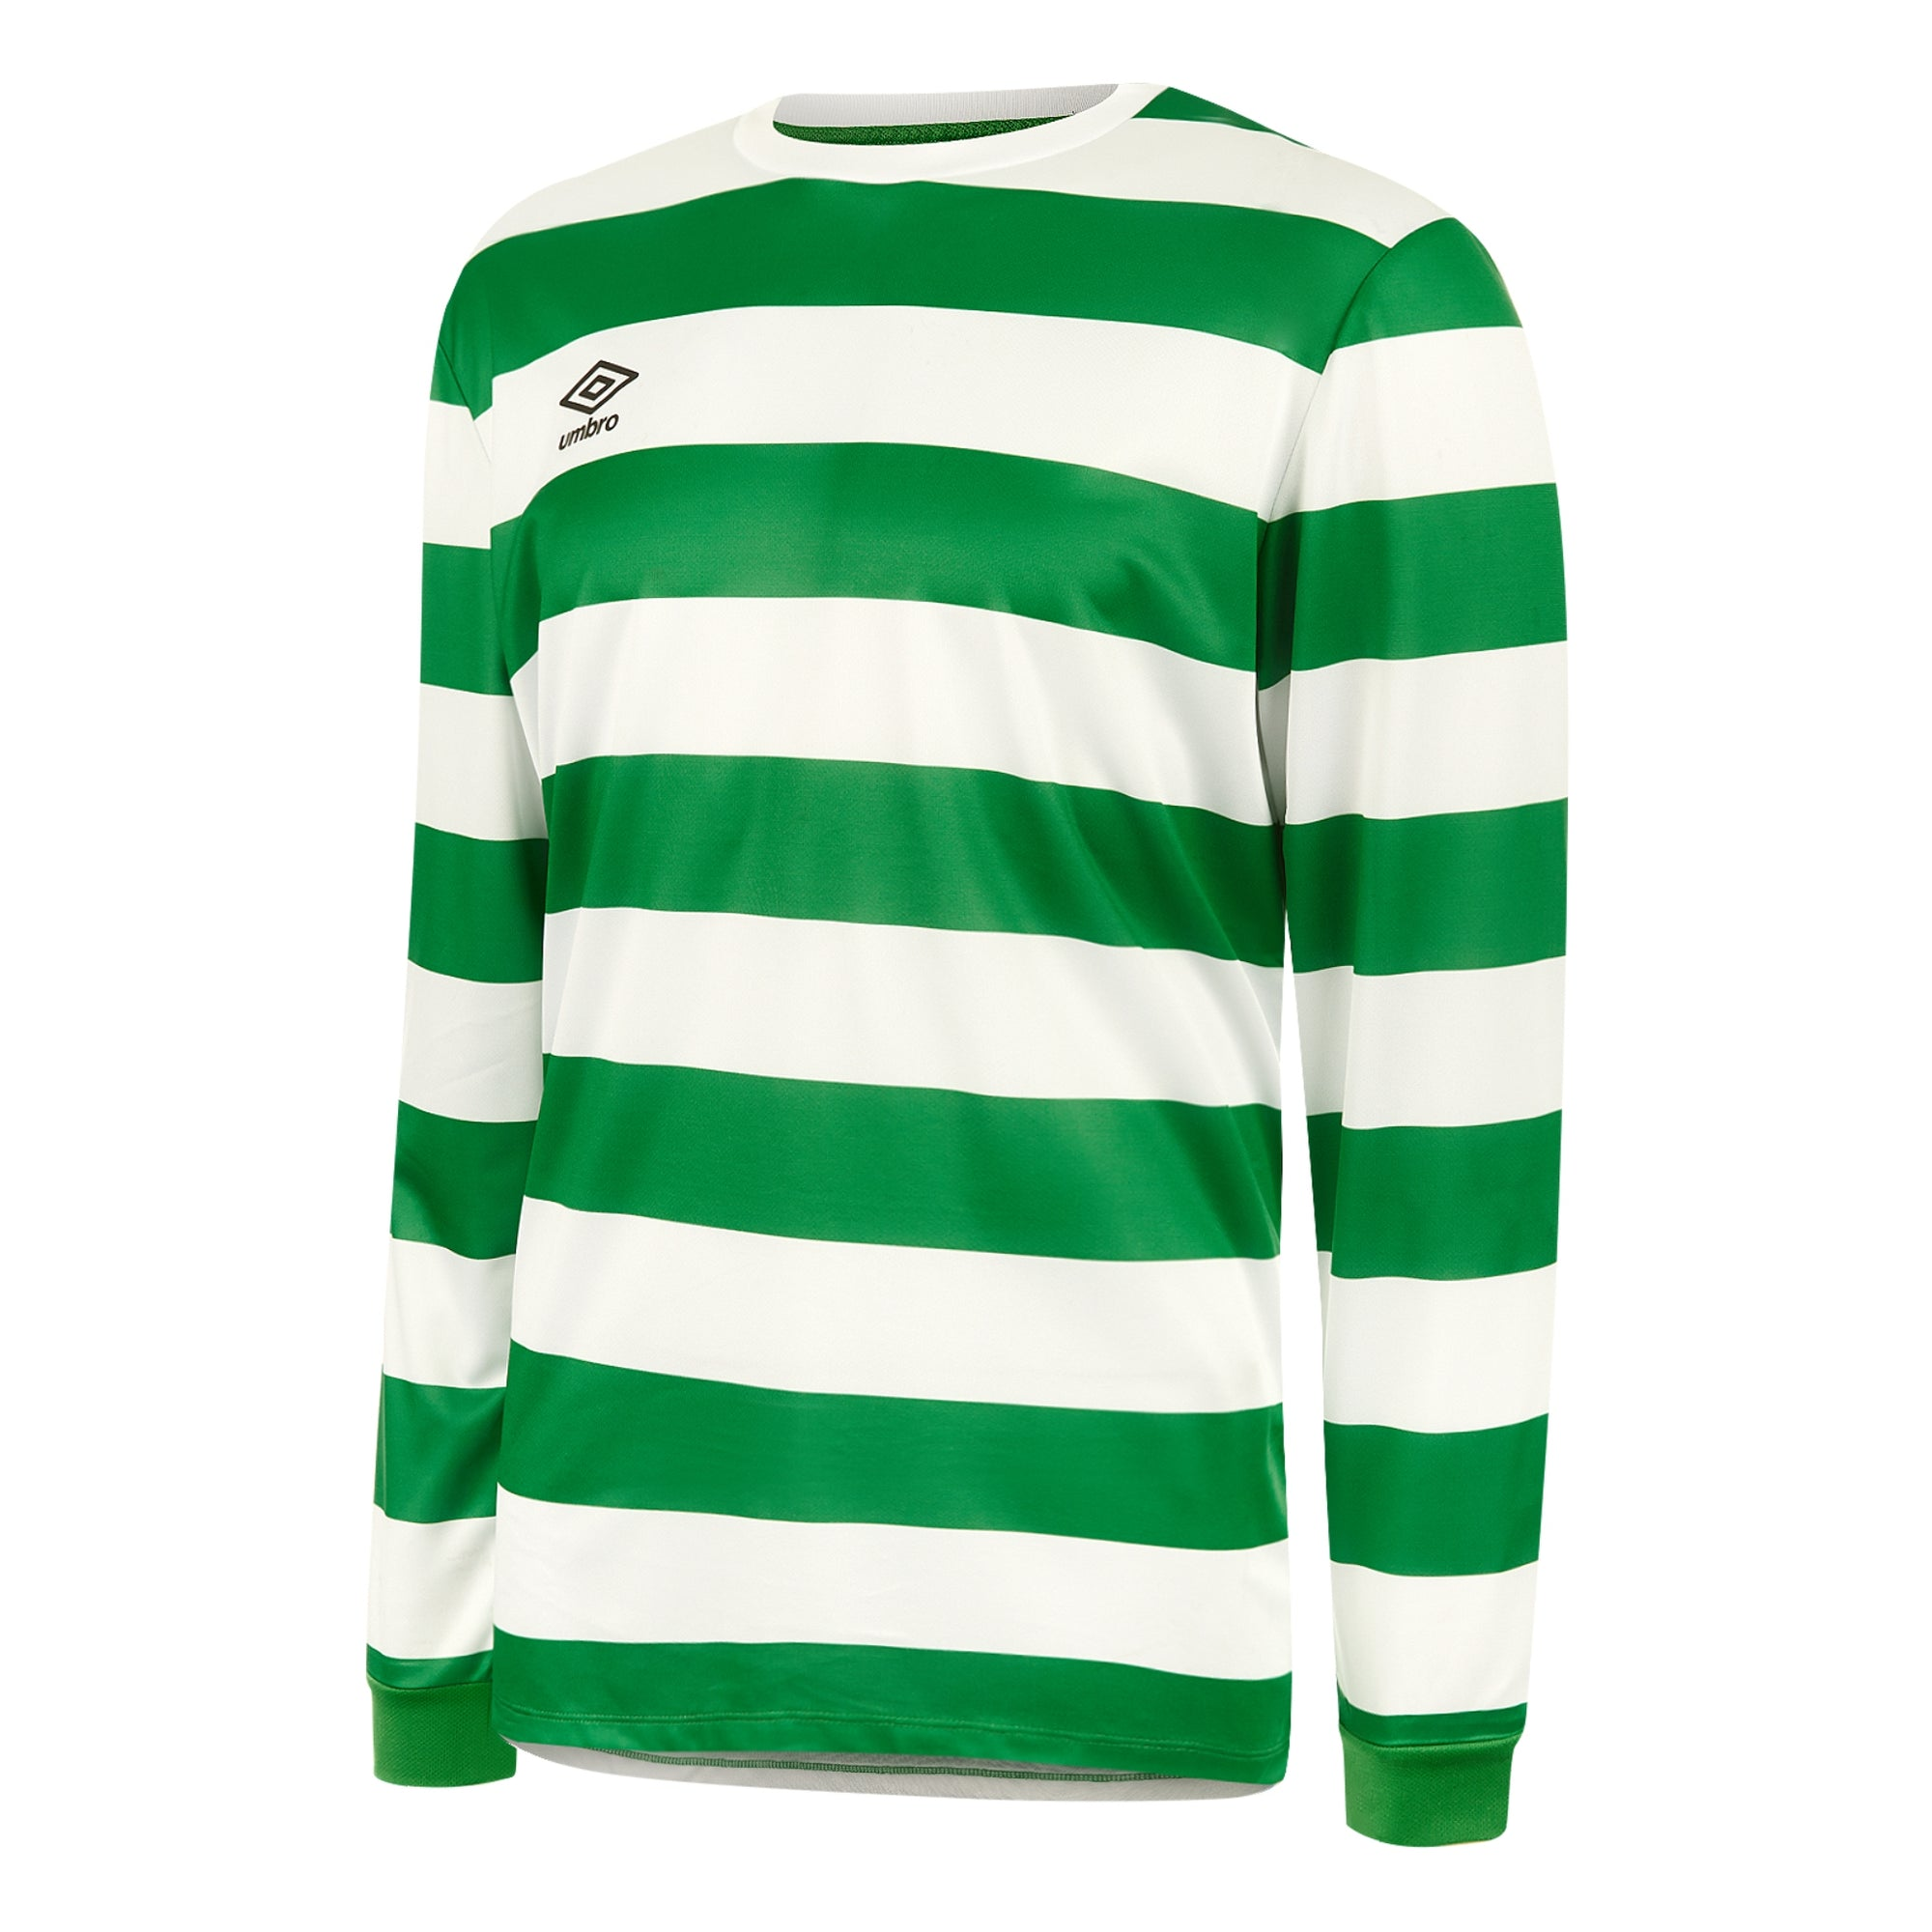 Umbro Terrace Jersey LS - Emerald/White